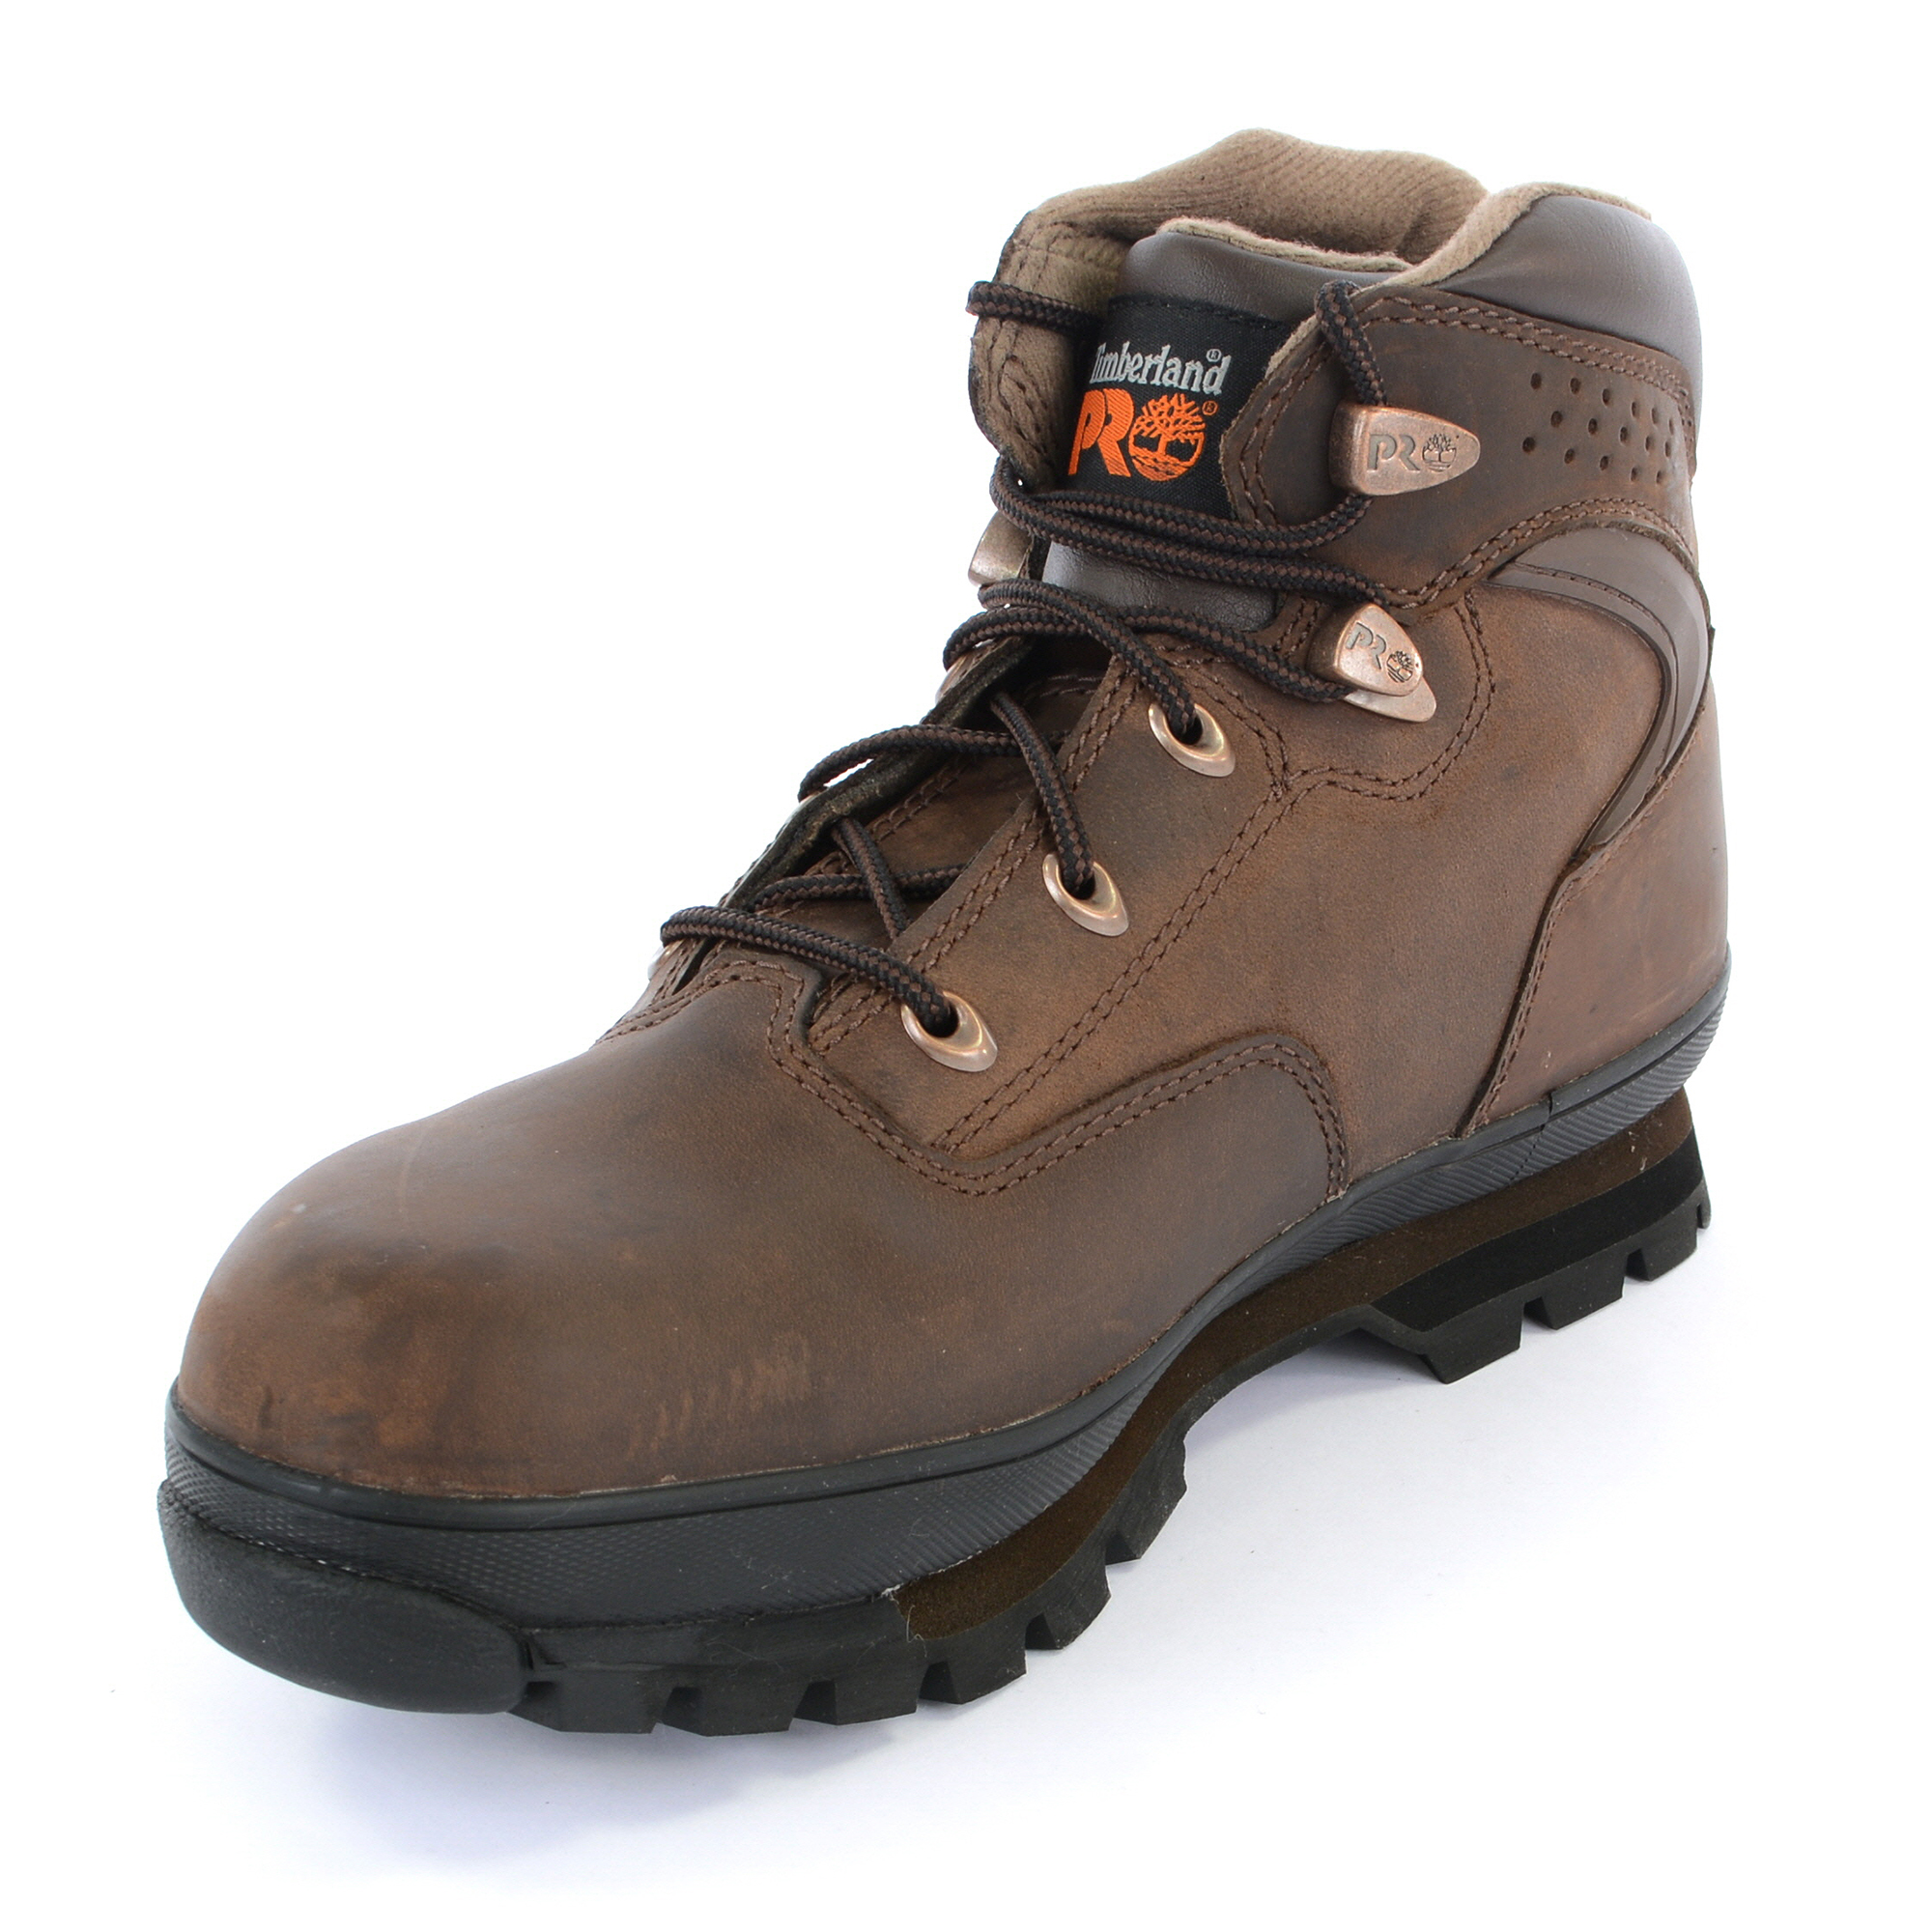 54cce4e51b4 Timberland Pro,6201065,Euro Hiker Safety Boots - Brown